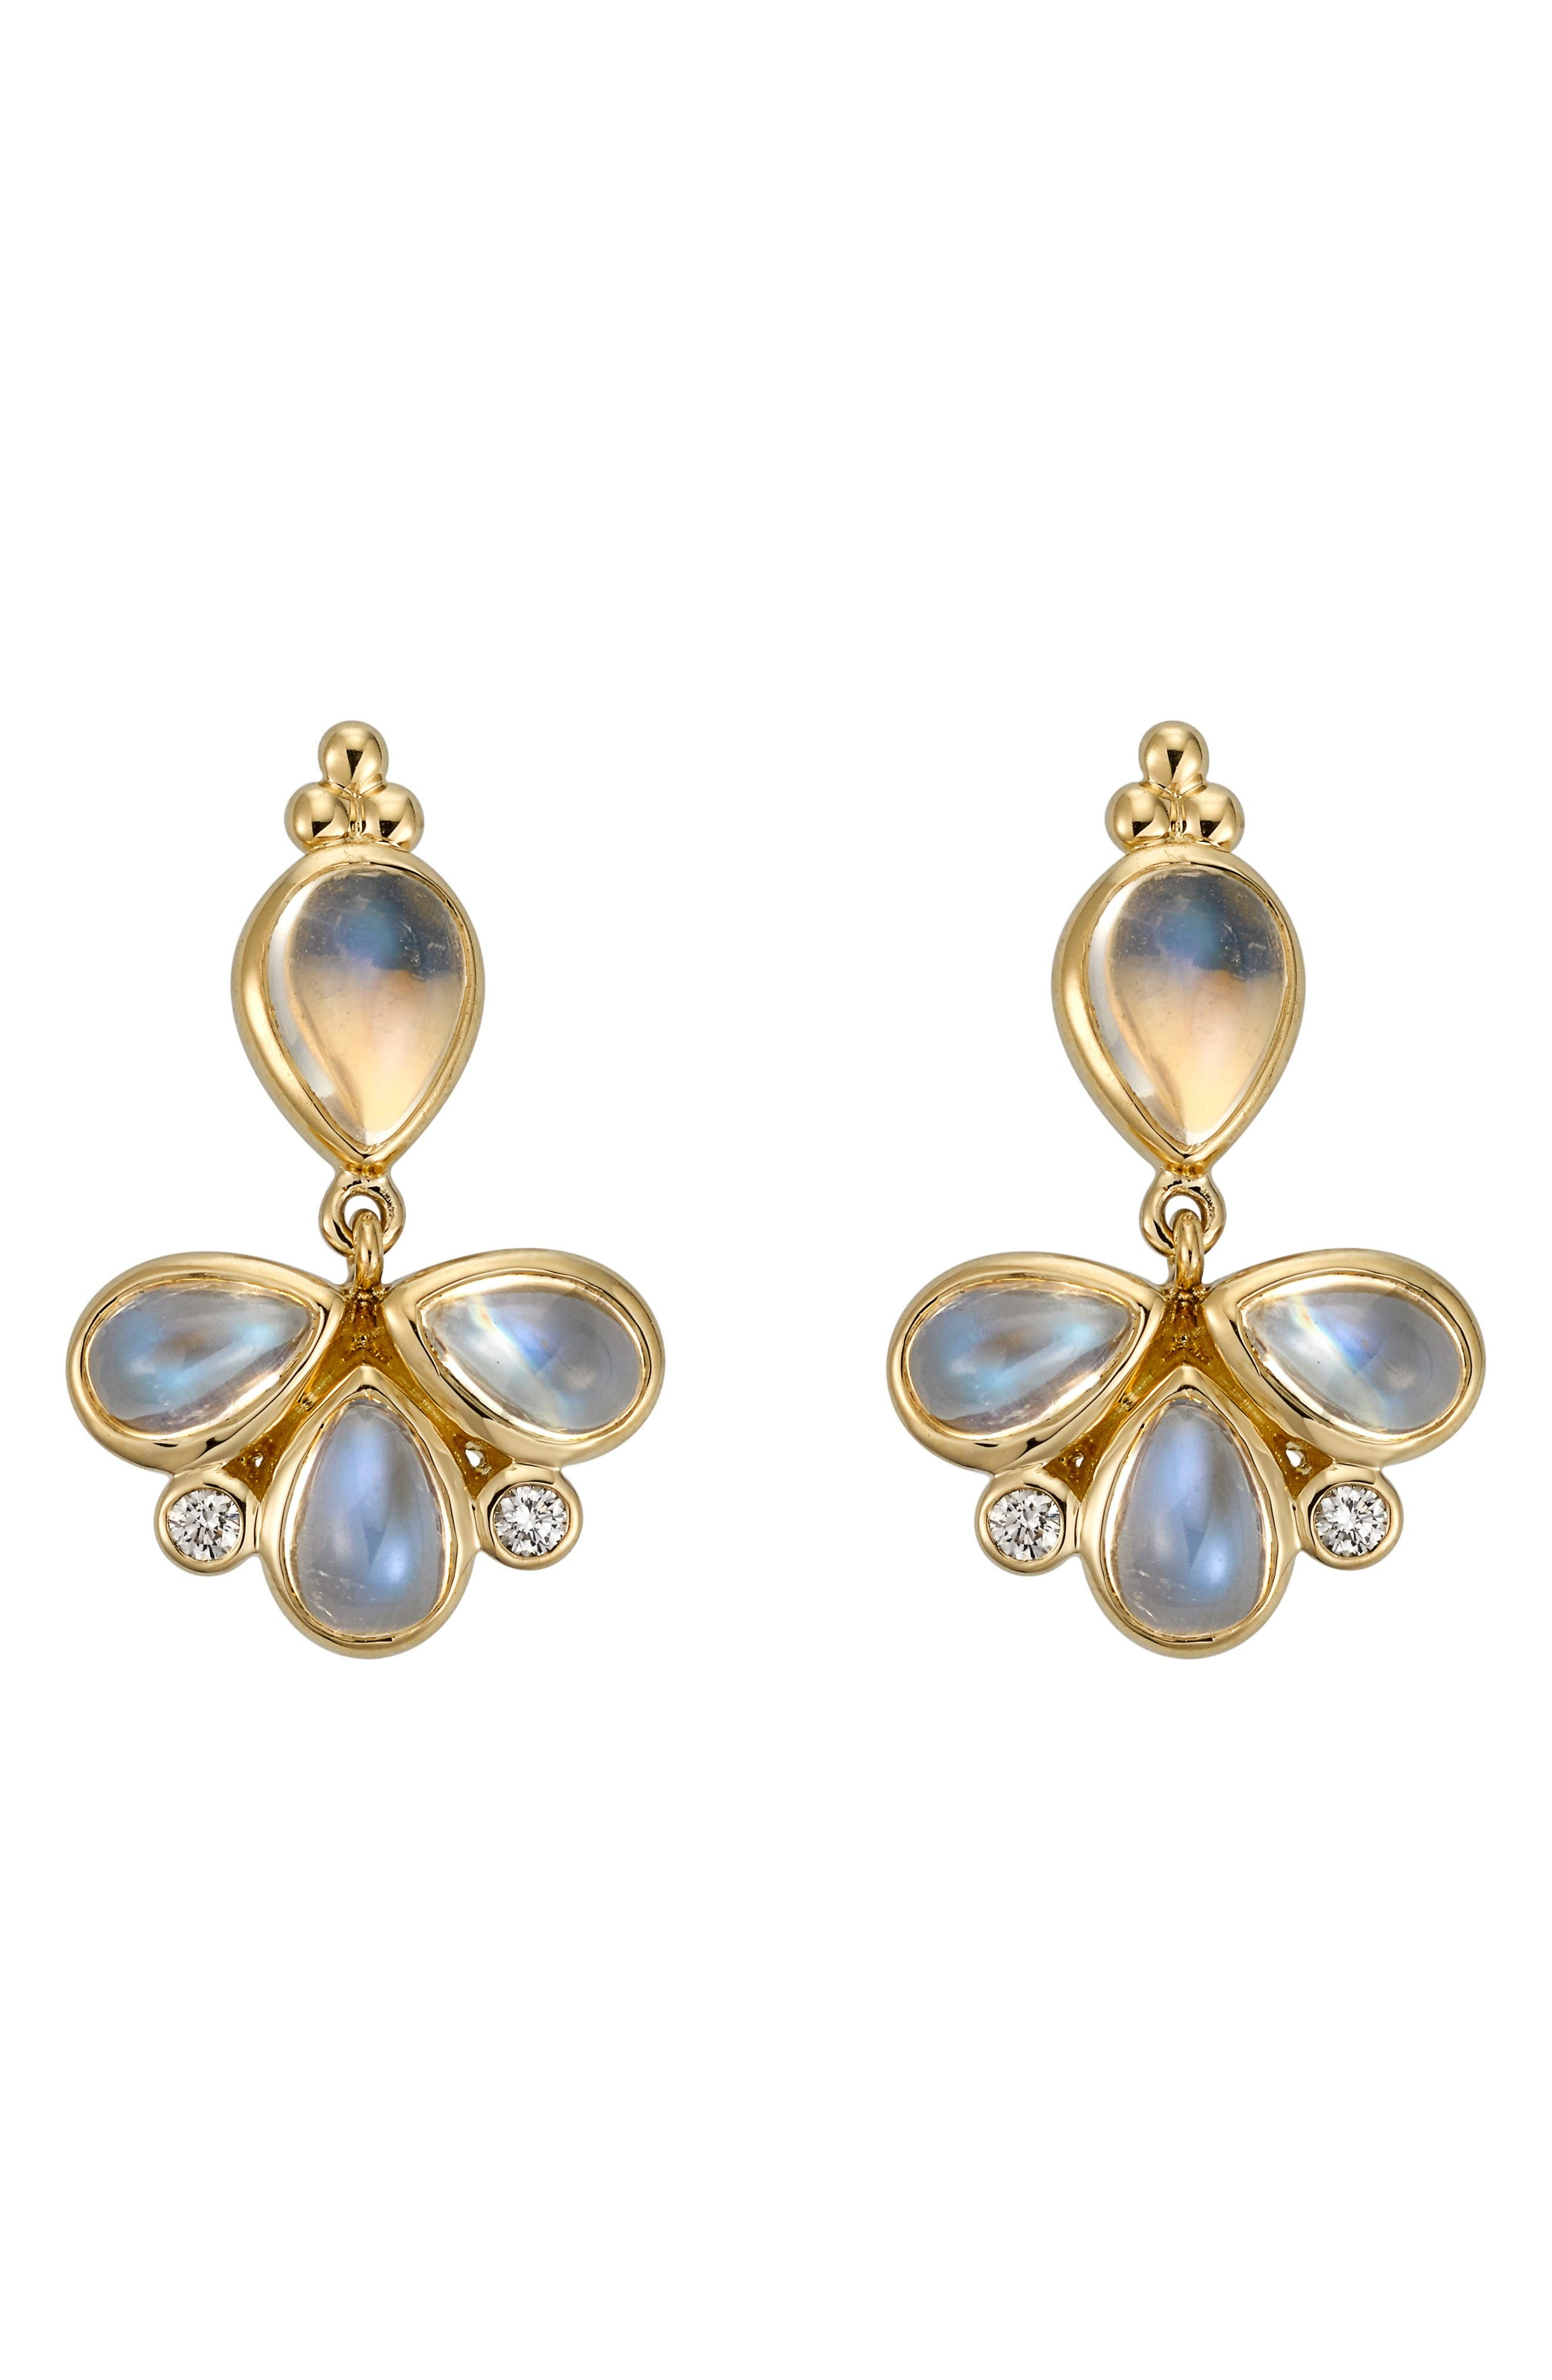 Alternate Image 1 Selected - Temple St. Clair Royal Blue Moonstone & Diamond Drop Earrings